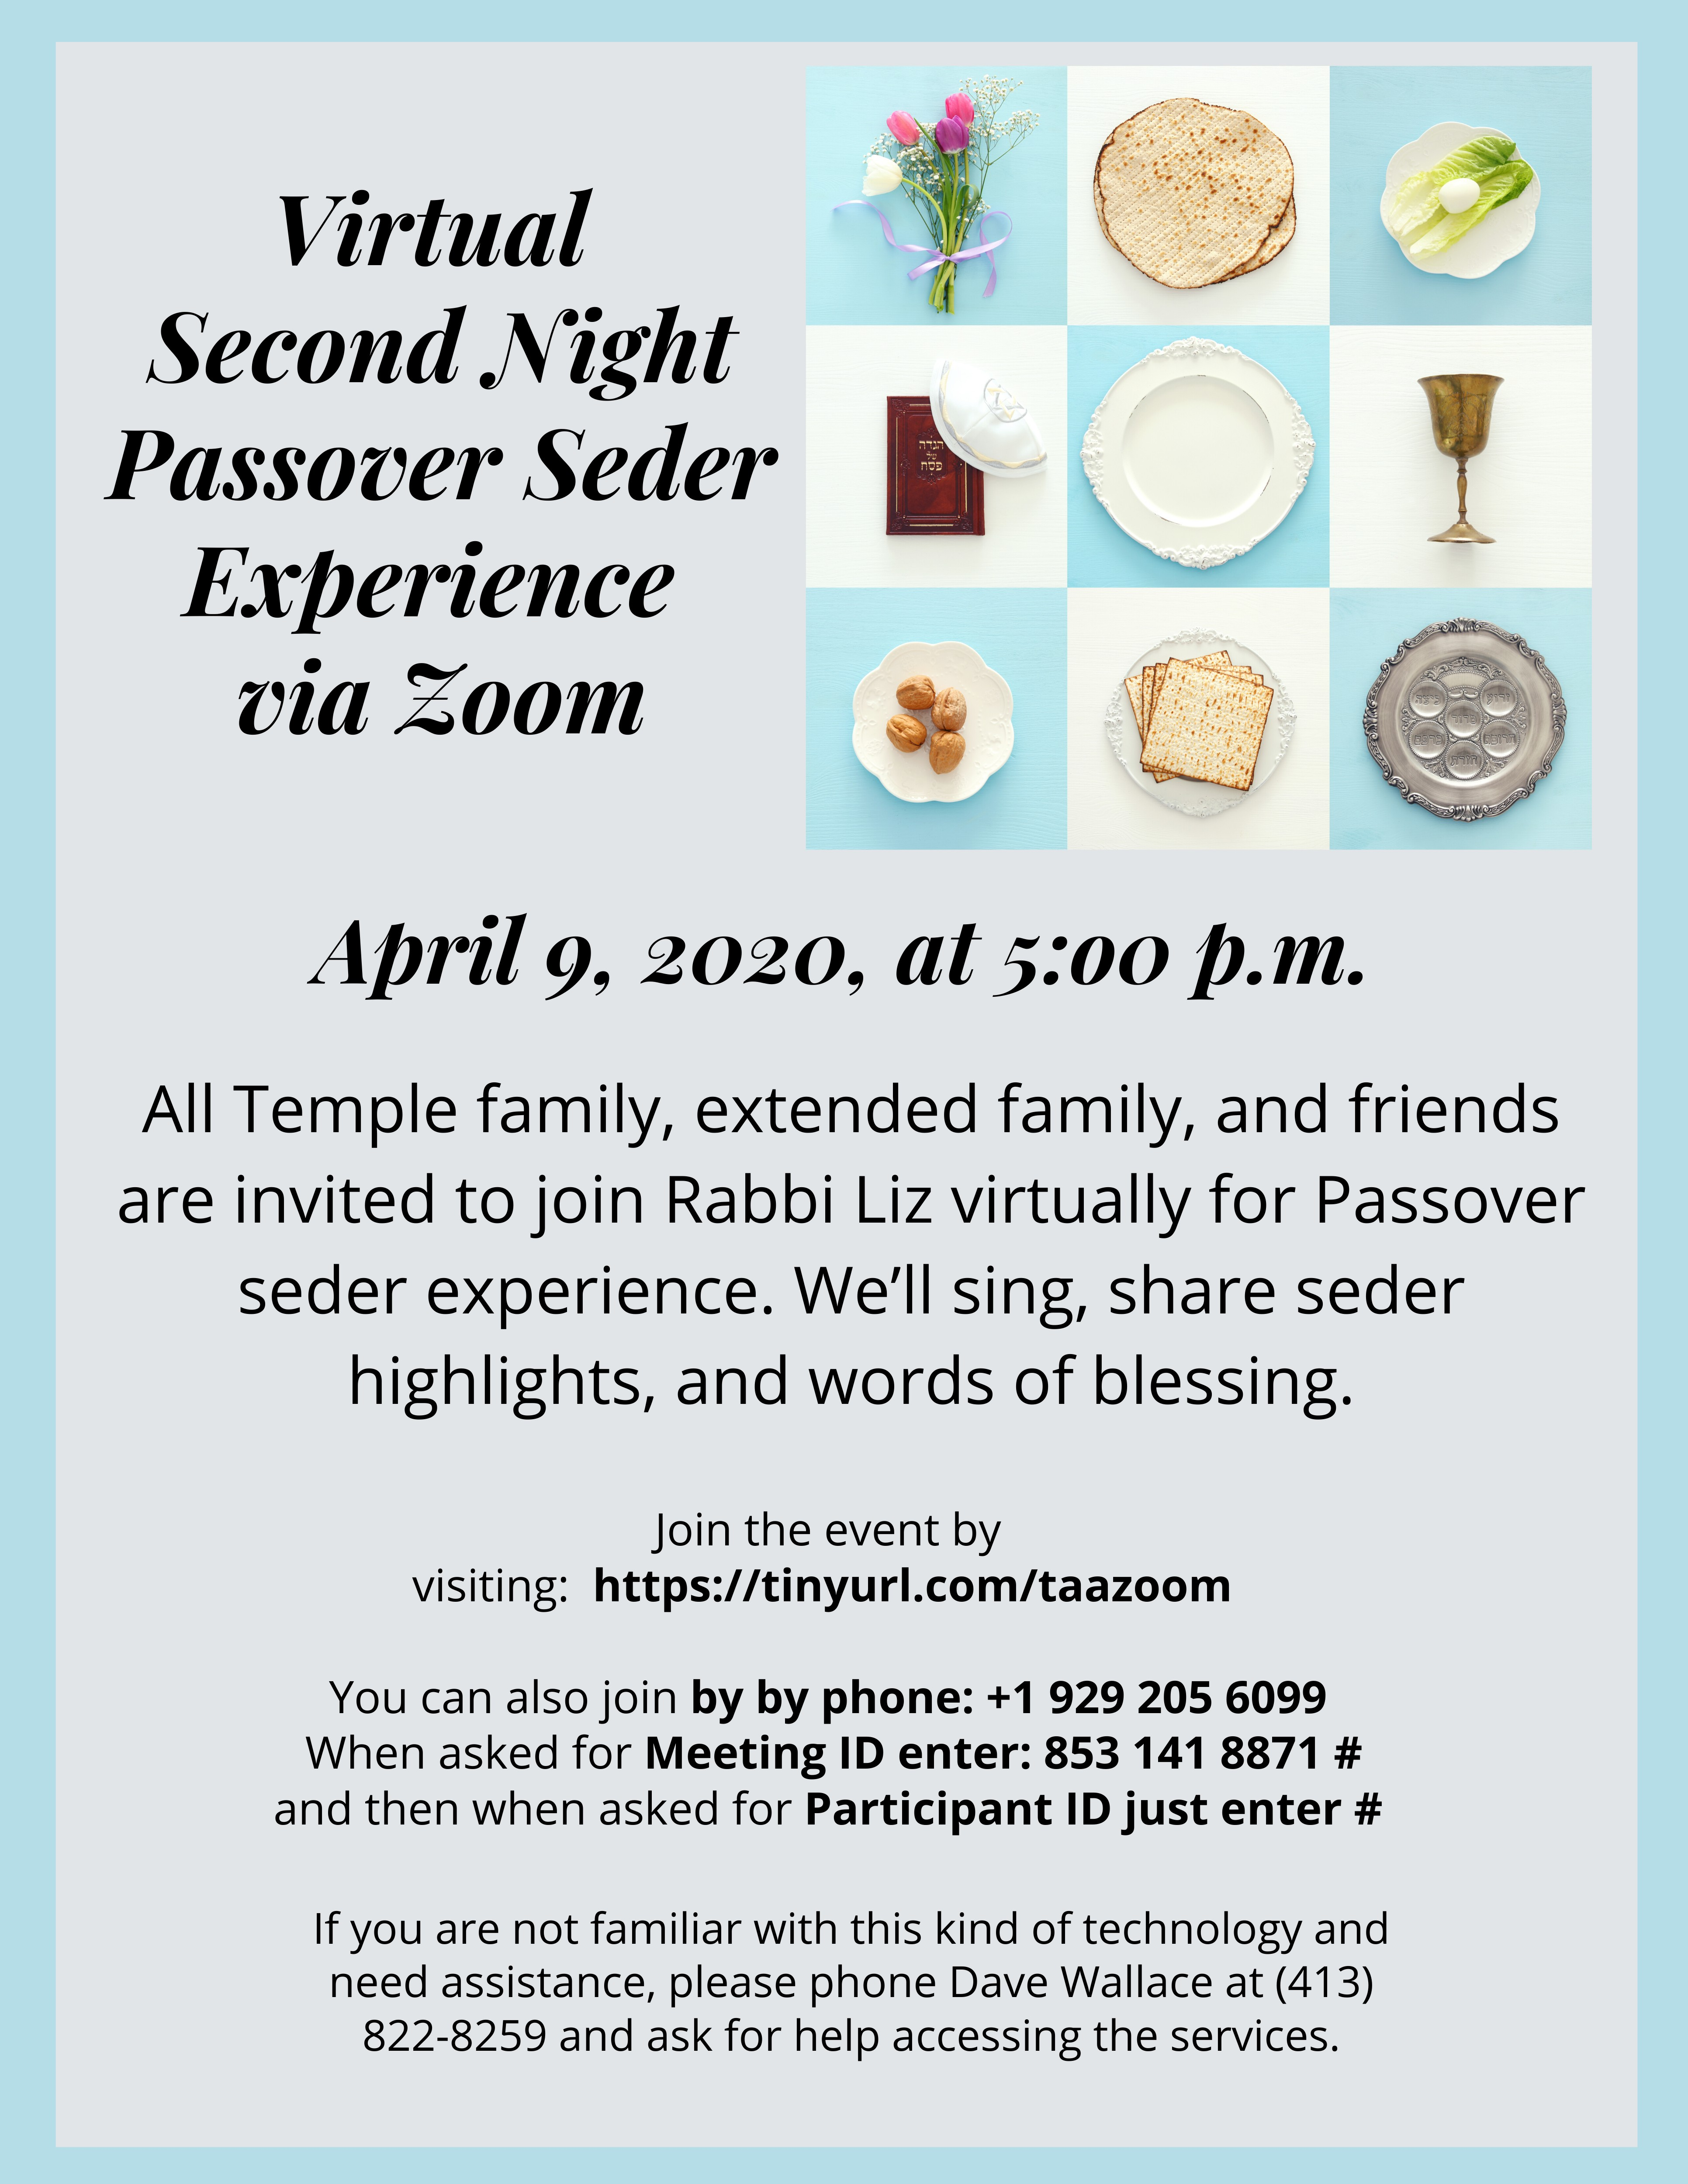 Banner Image for Virtual Passover Second Night Seder Experience